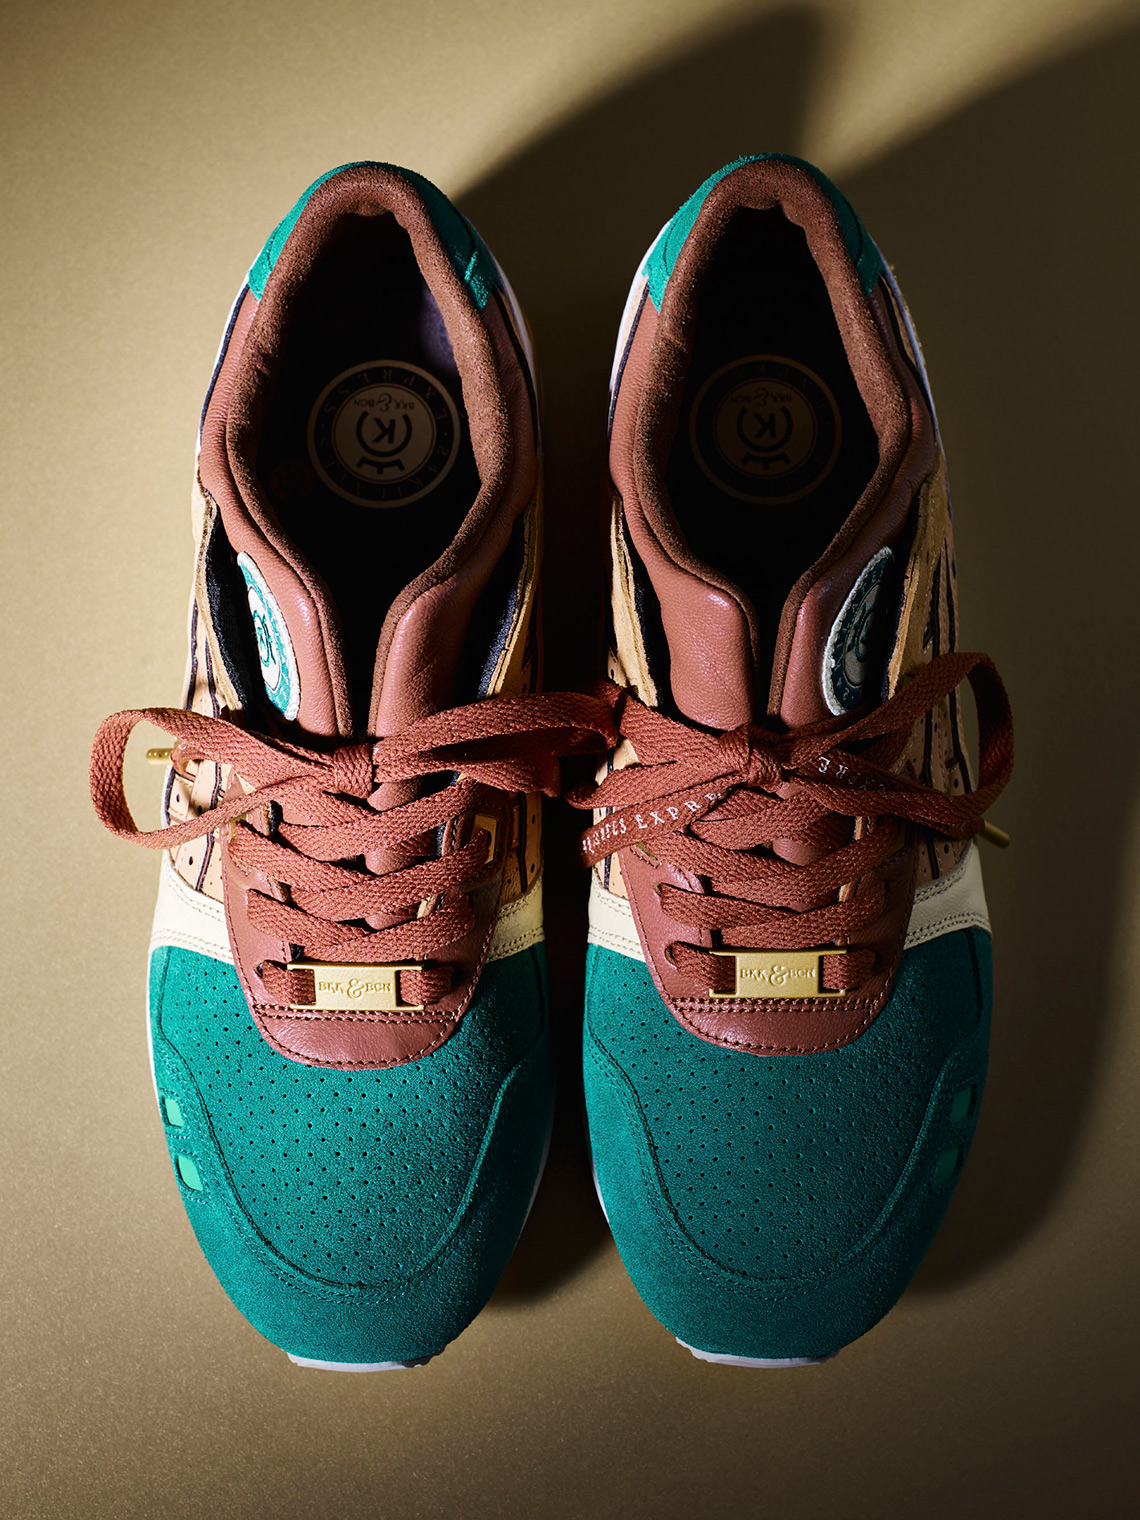 new product fad86 51eac 24 Kilates ASICS GEL-Lyte III Express Release Date ...